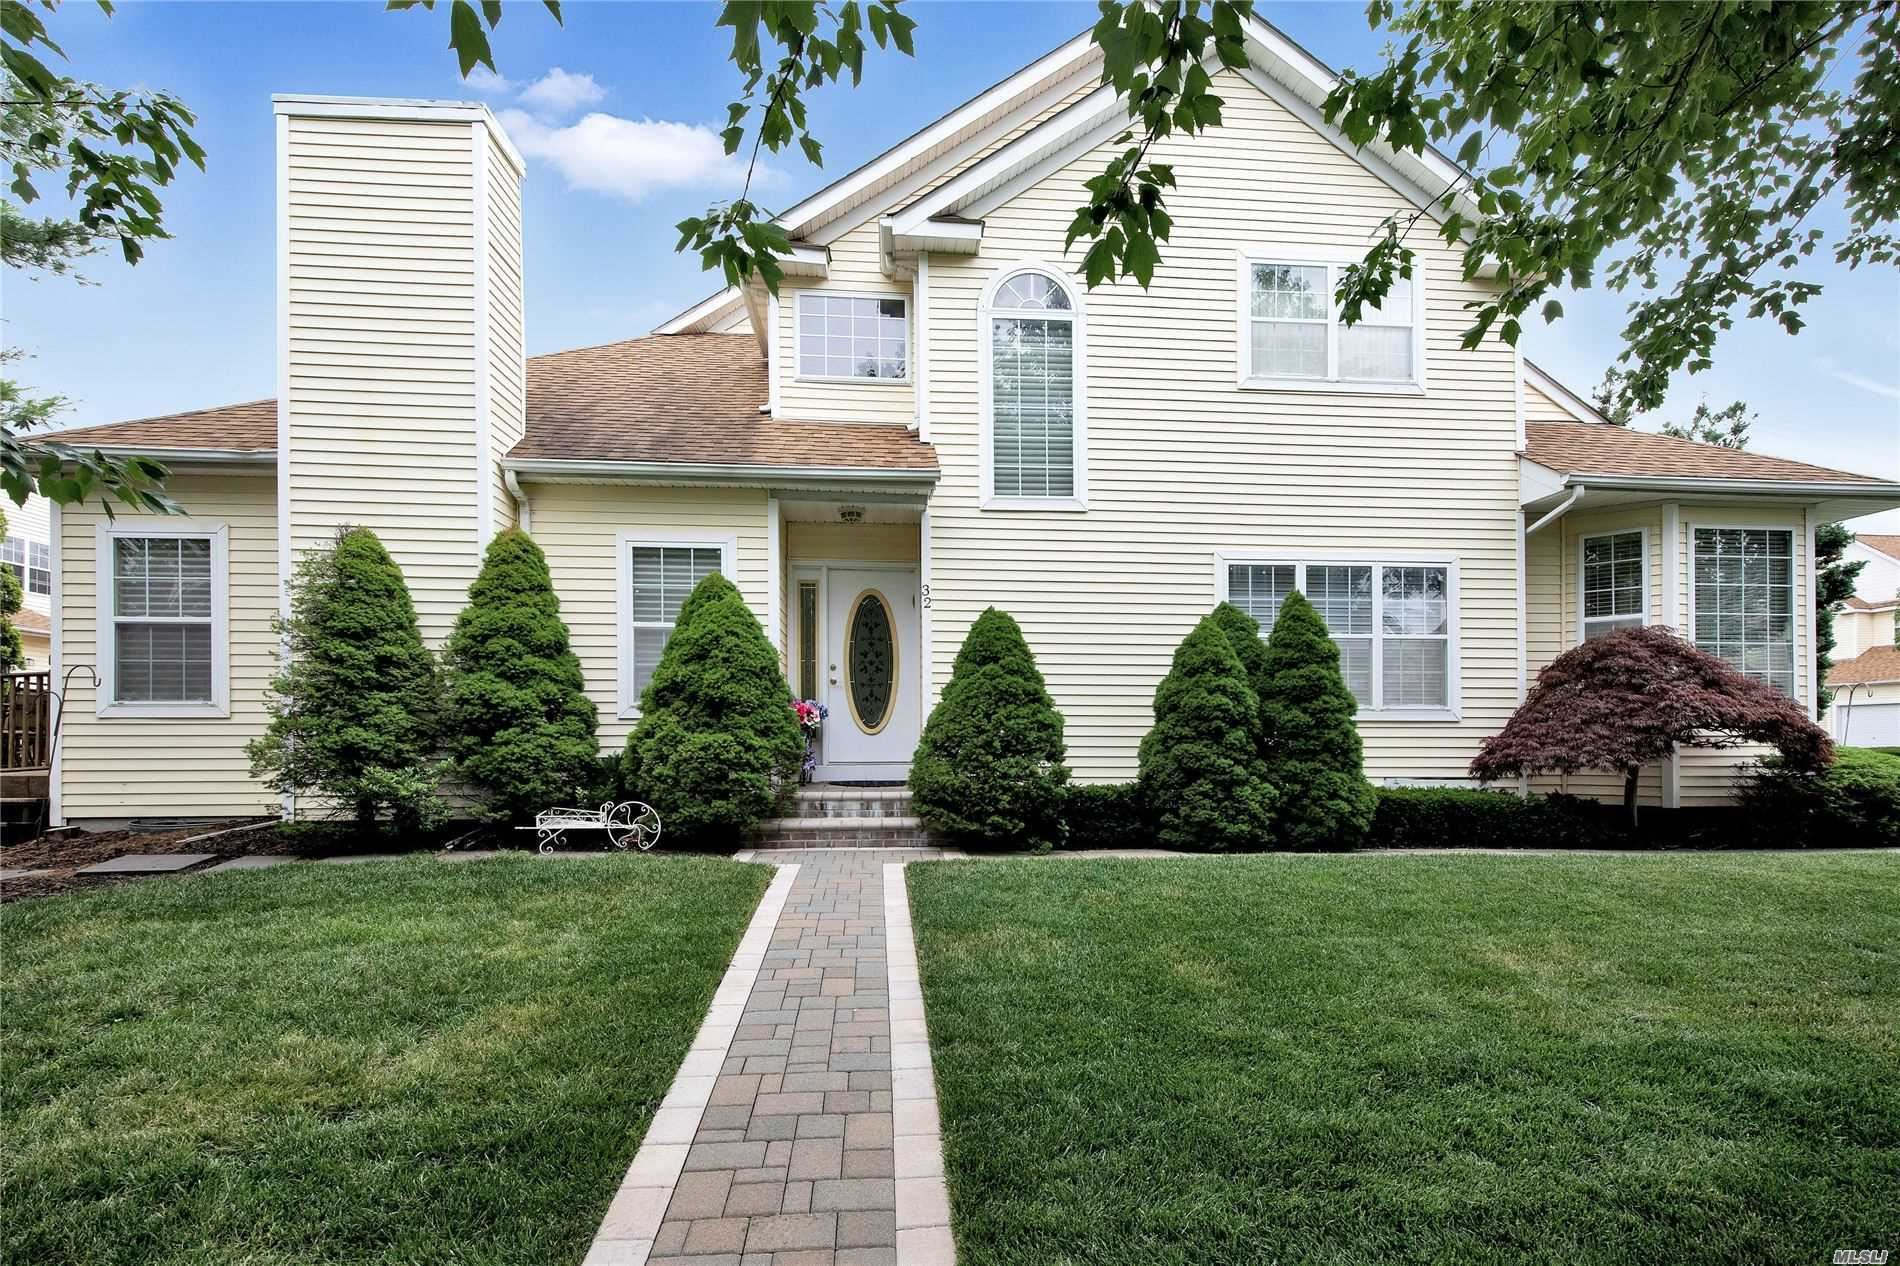 32 Blueberry Court, Melville, NY 11747 - MLS#: 3230627